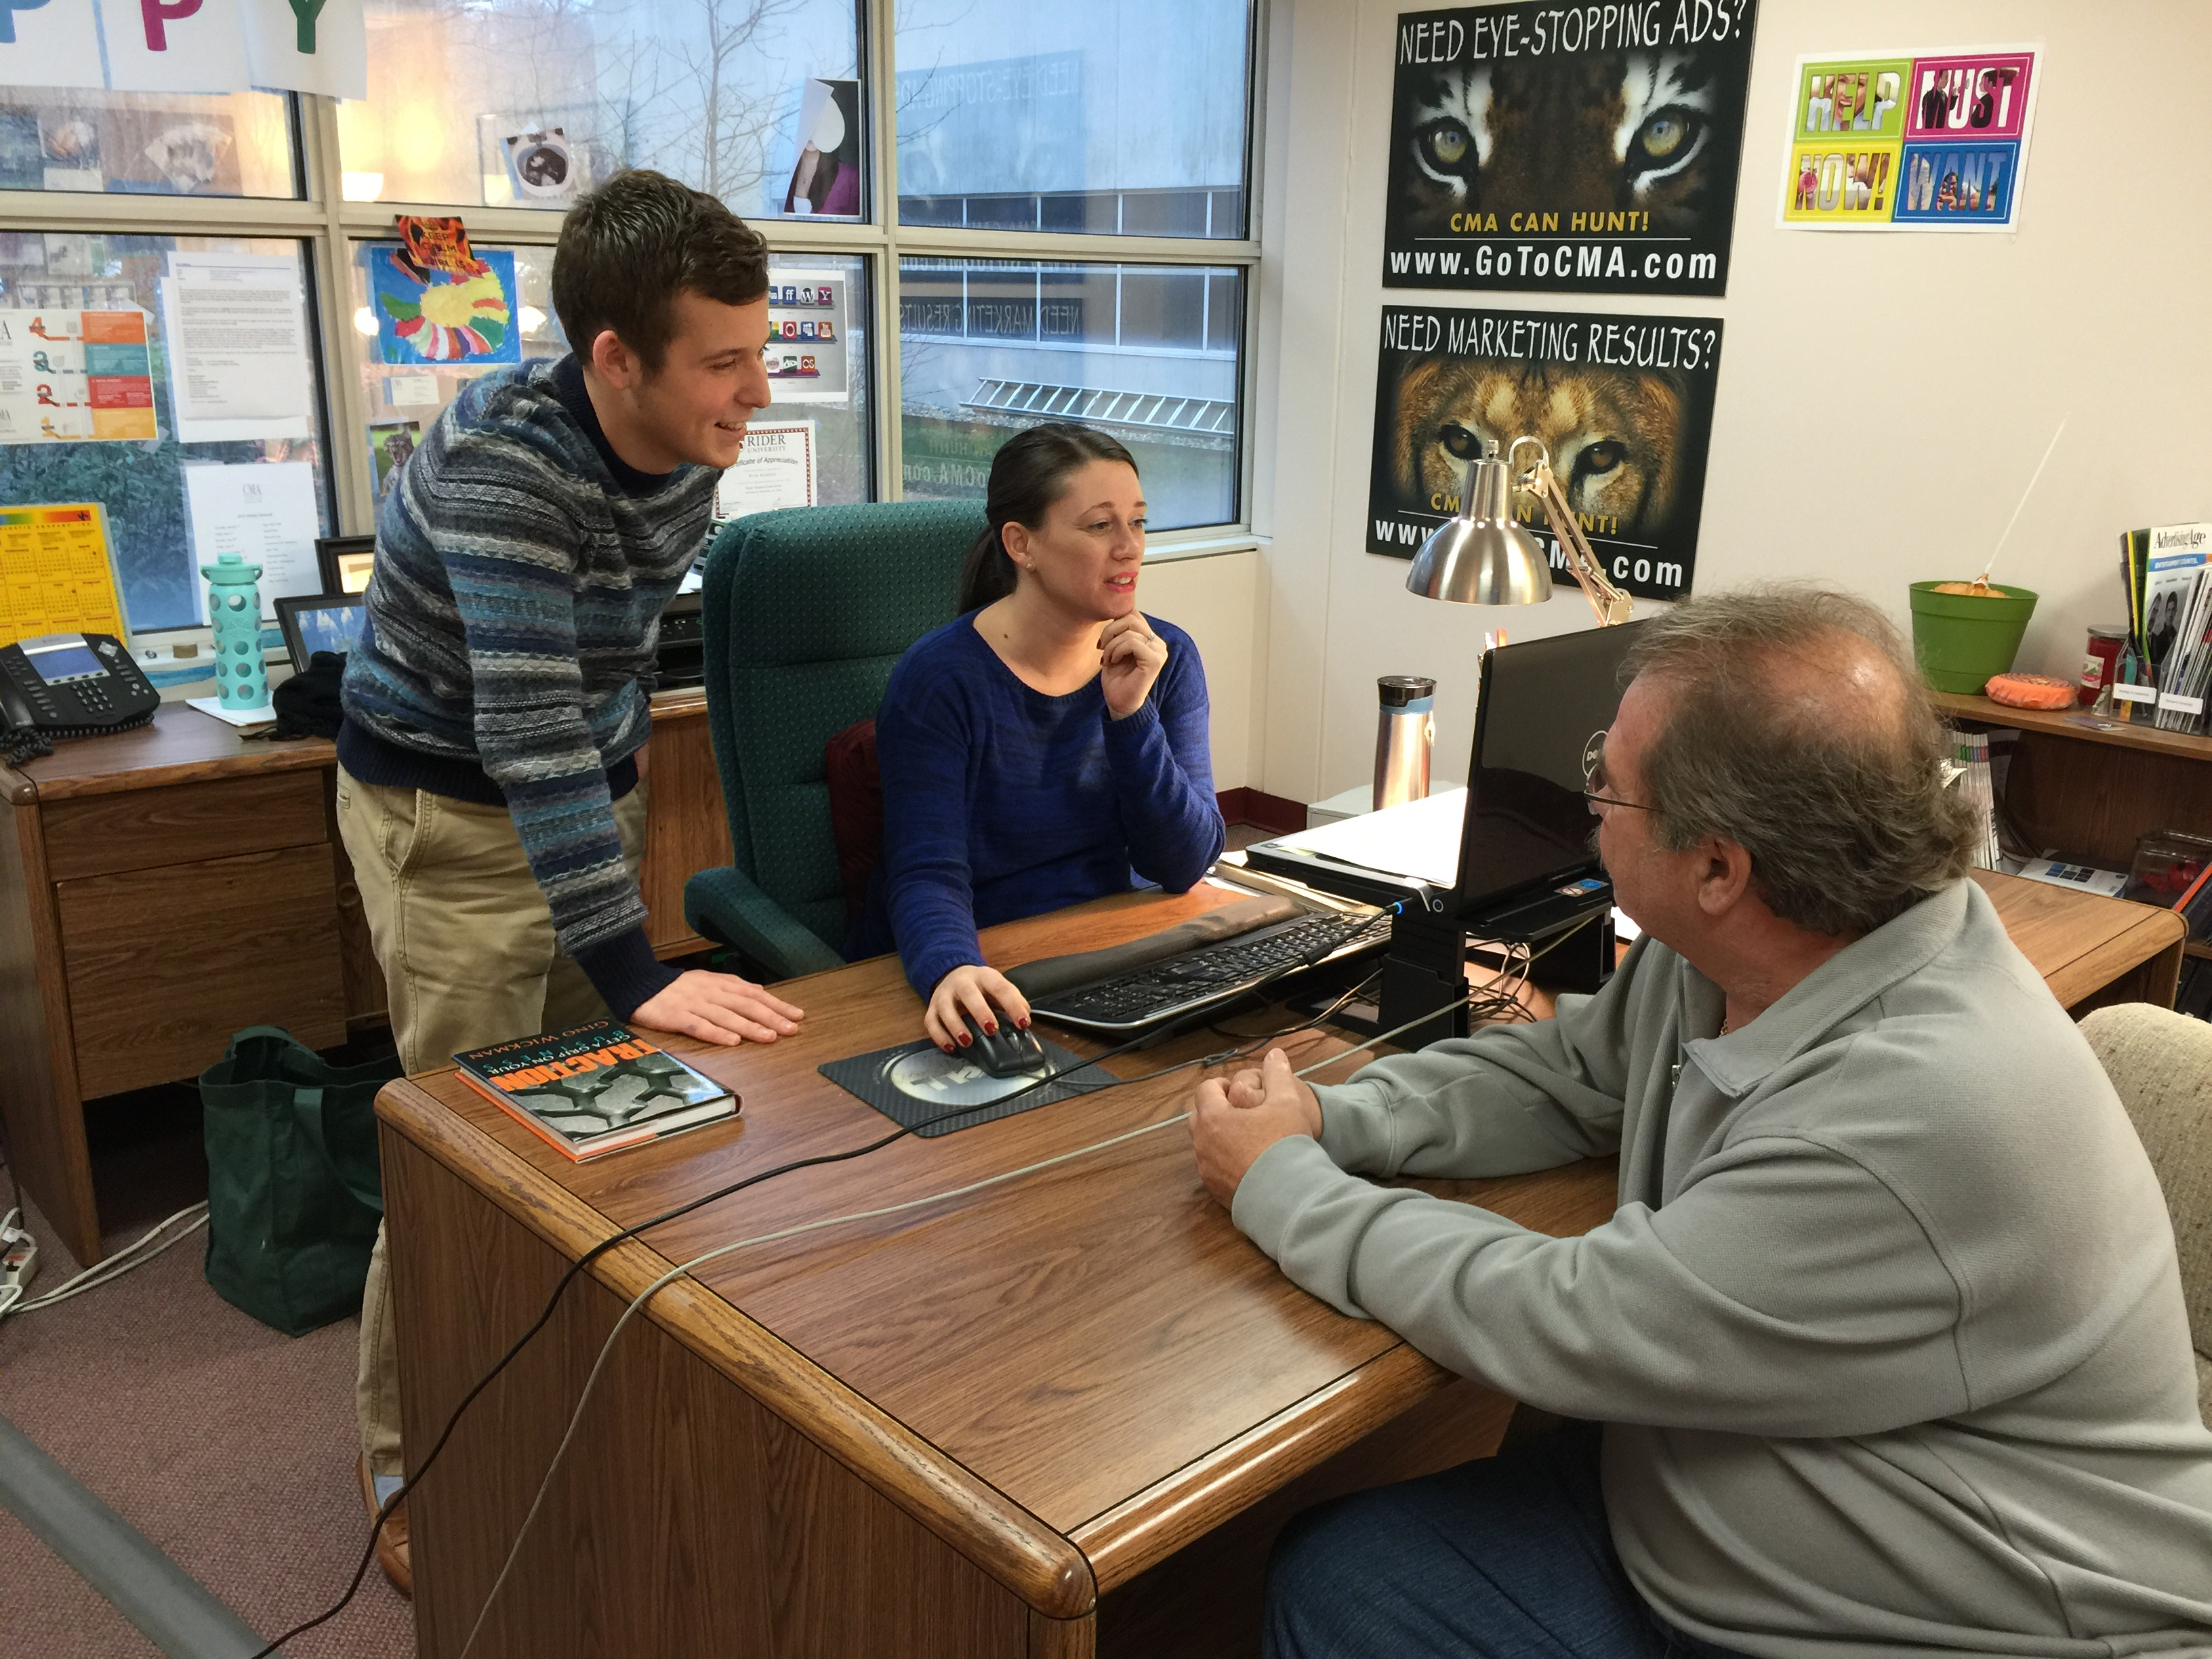 Kevin Grunder, a public relations major at Rider University who lives in Linden, works with Erin Klebaur, director of marketing services, and Jeff Barnhart, CEO and president, as he gets ready to present his ideas for the CMA blog to the management team as part of his internship at Creative Marketing Alliance.